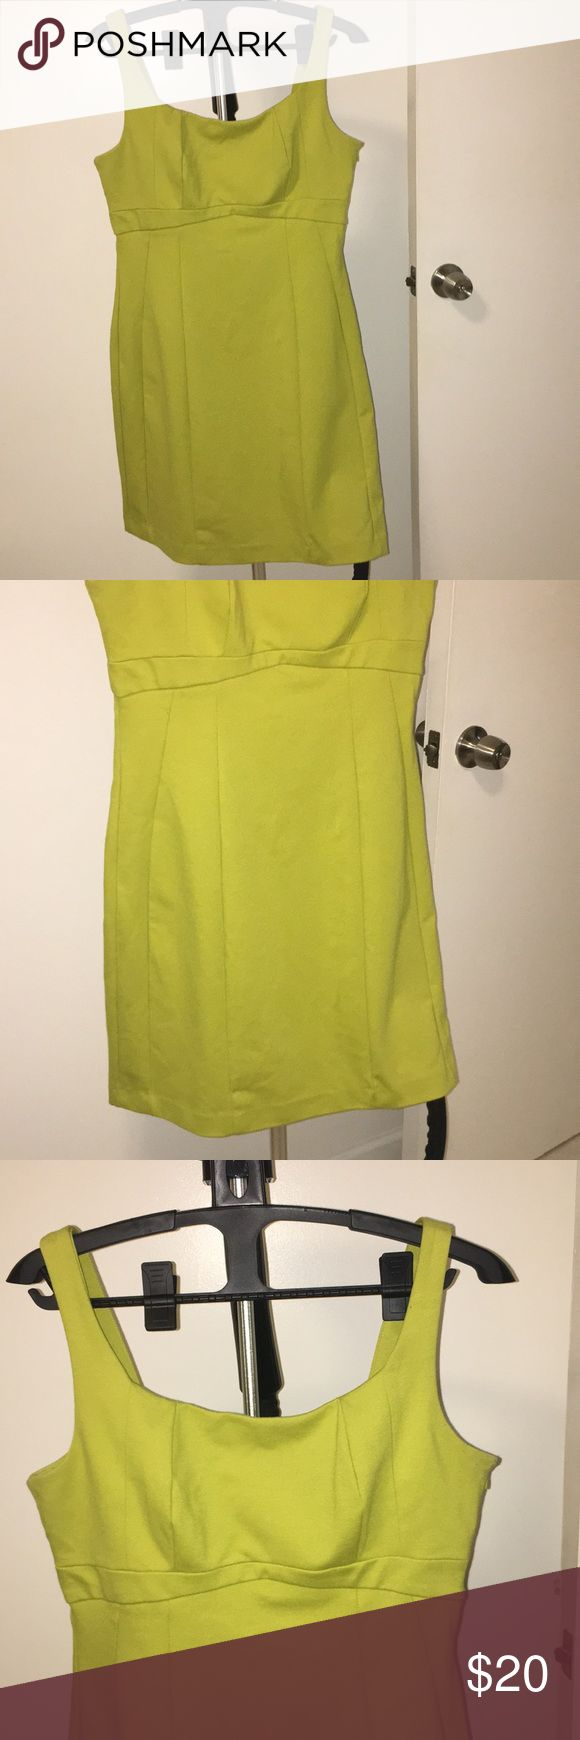 Lime Green Structured Shift Dress Gorgeous structured lime green dress. Flattering neckline and squared off back. Really compliments curves nicely as it has symmetrical lines around the bottom!! Very nice thick material. Worn just three times. Can be worn as is or with a cardigan or blazer. Great for work or going out. New York & Company Dresses